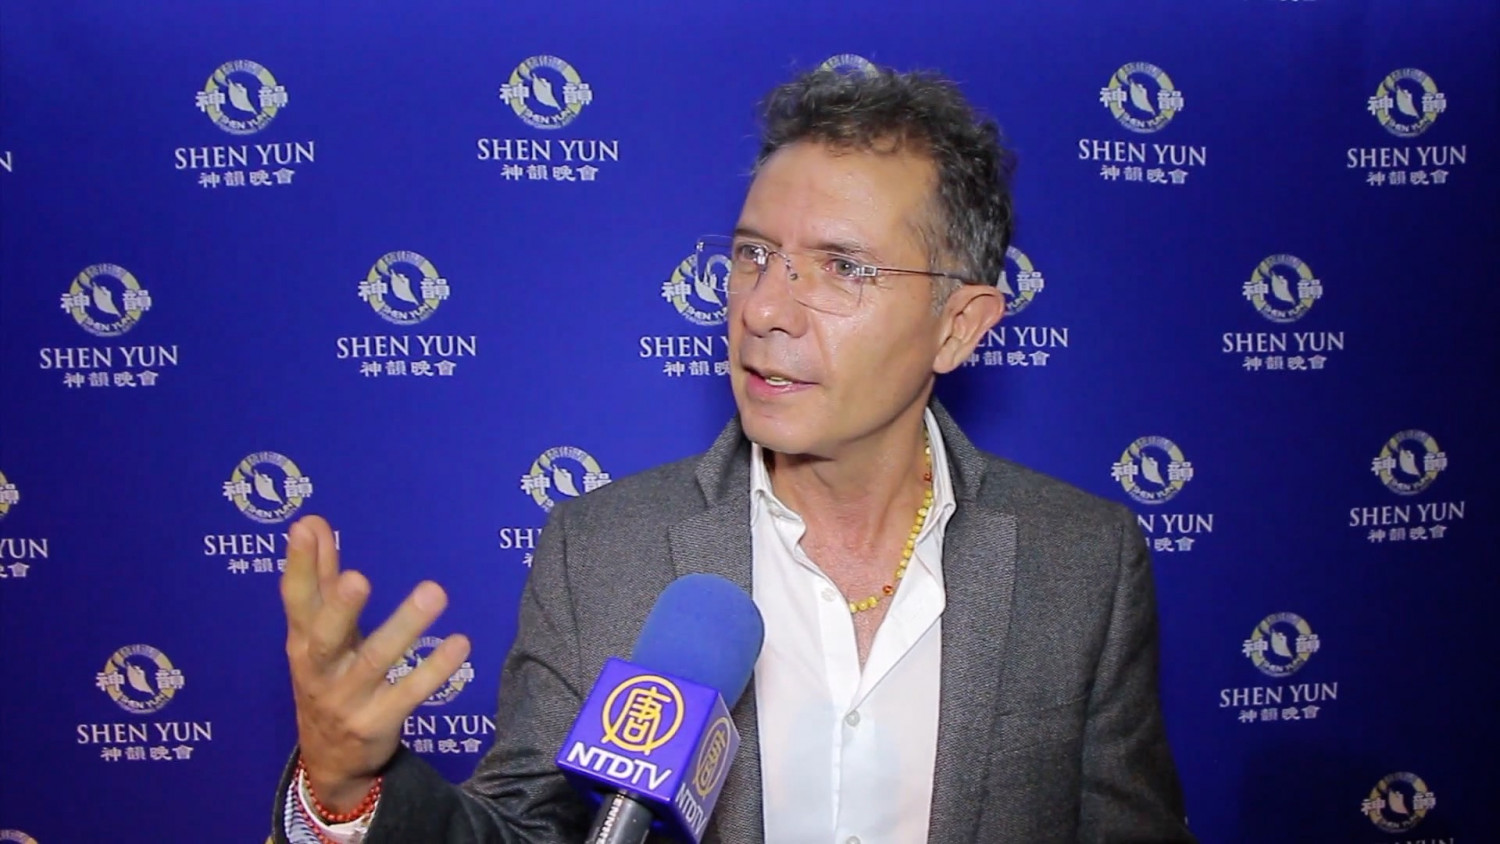 Shen Yun Artists 'Touched My Soul' Says Professor of Music